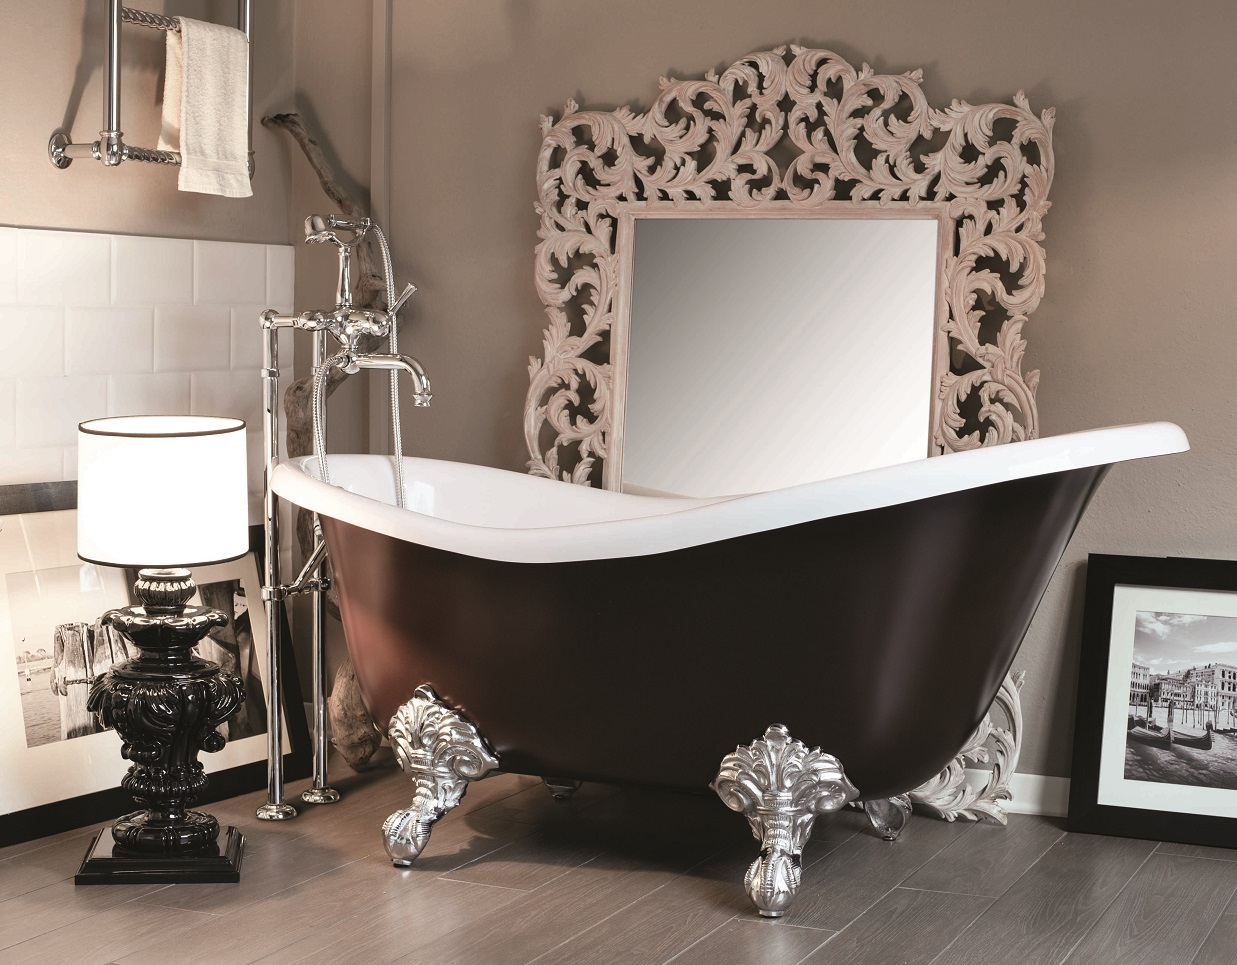 Gaia mobili - collection - bathtubs - Margot - Marble resin bathtub